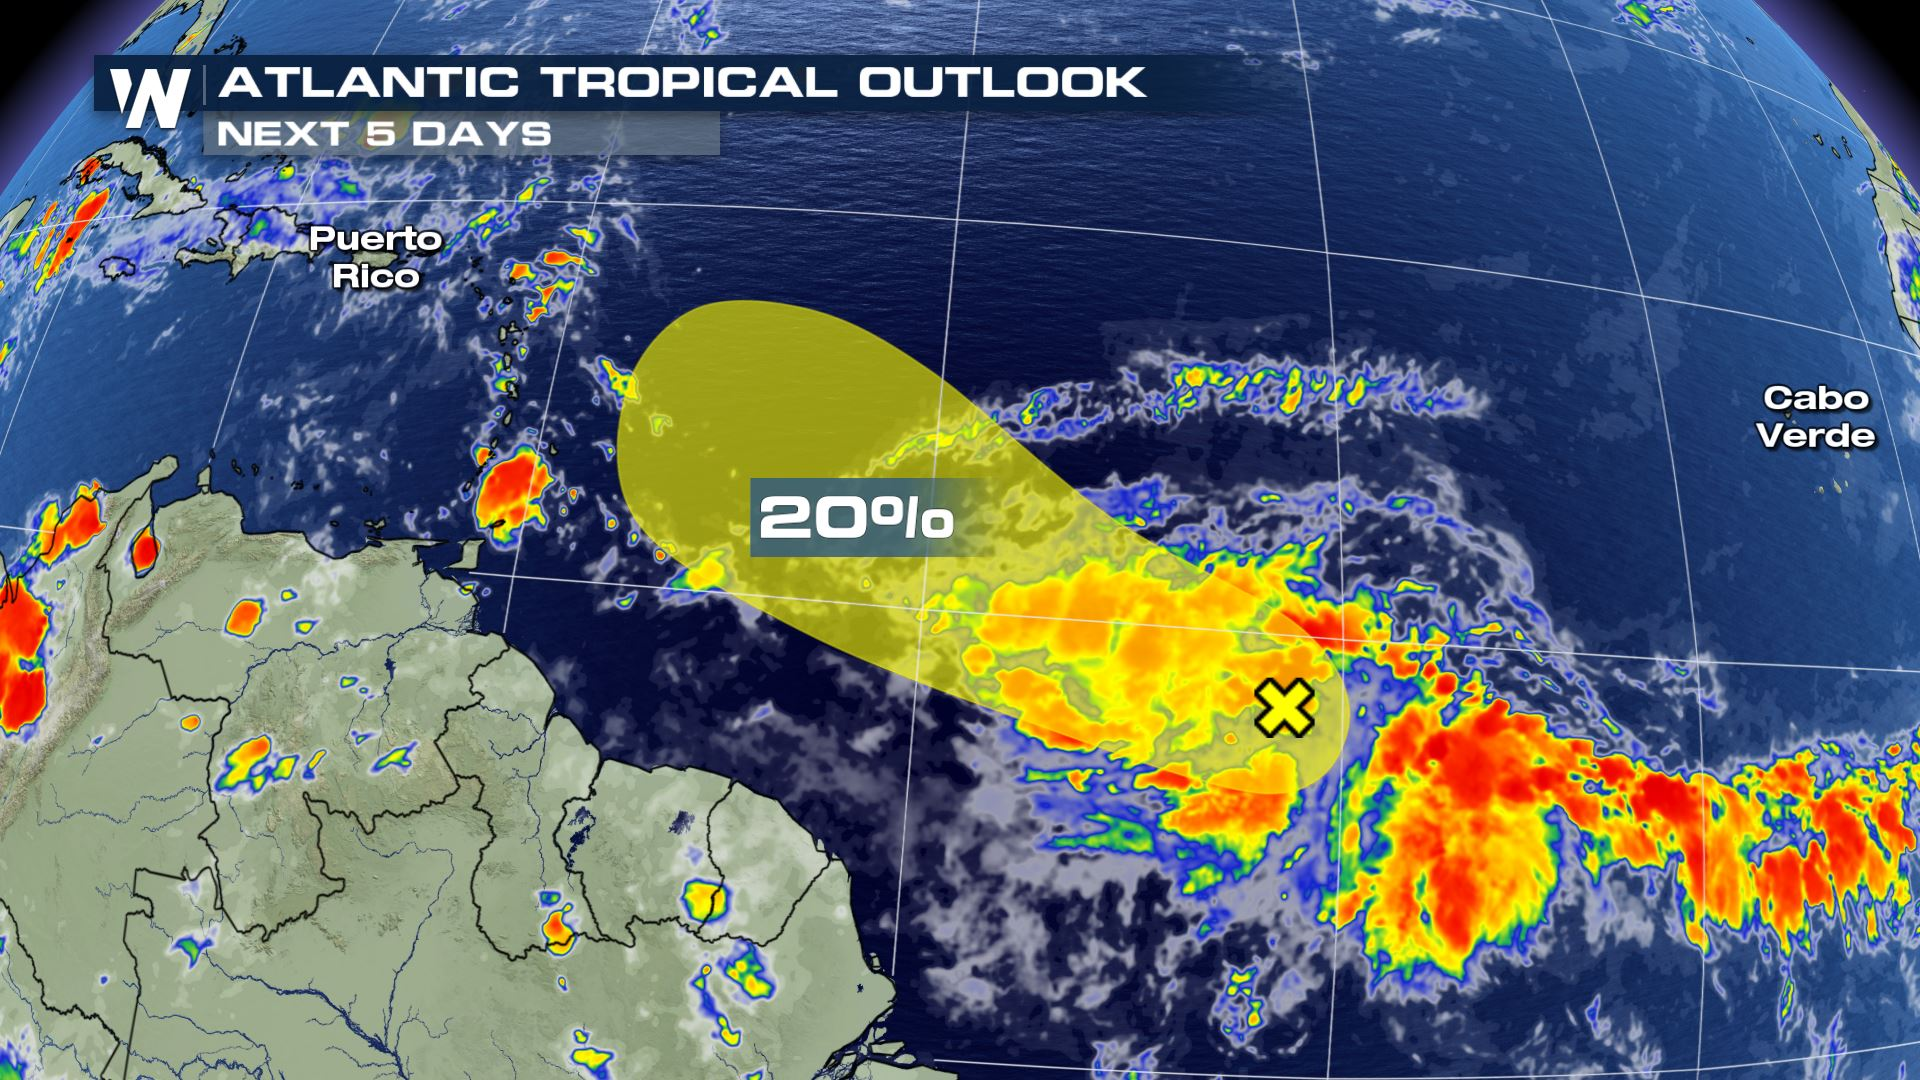 Could There be More Activity in the Atlantic?